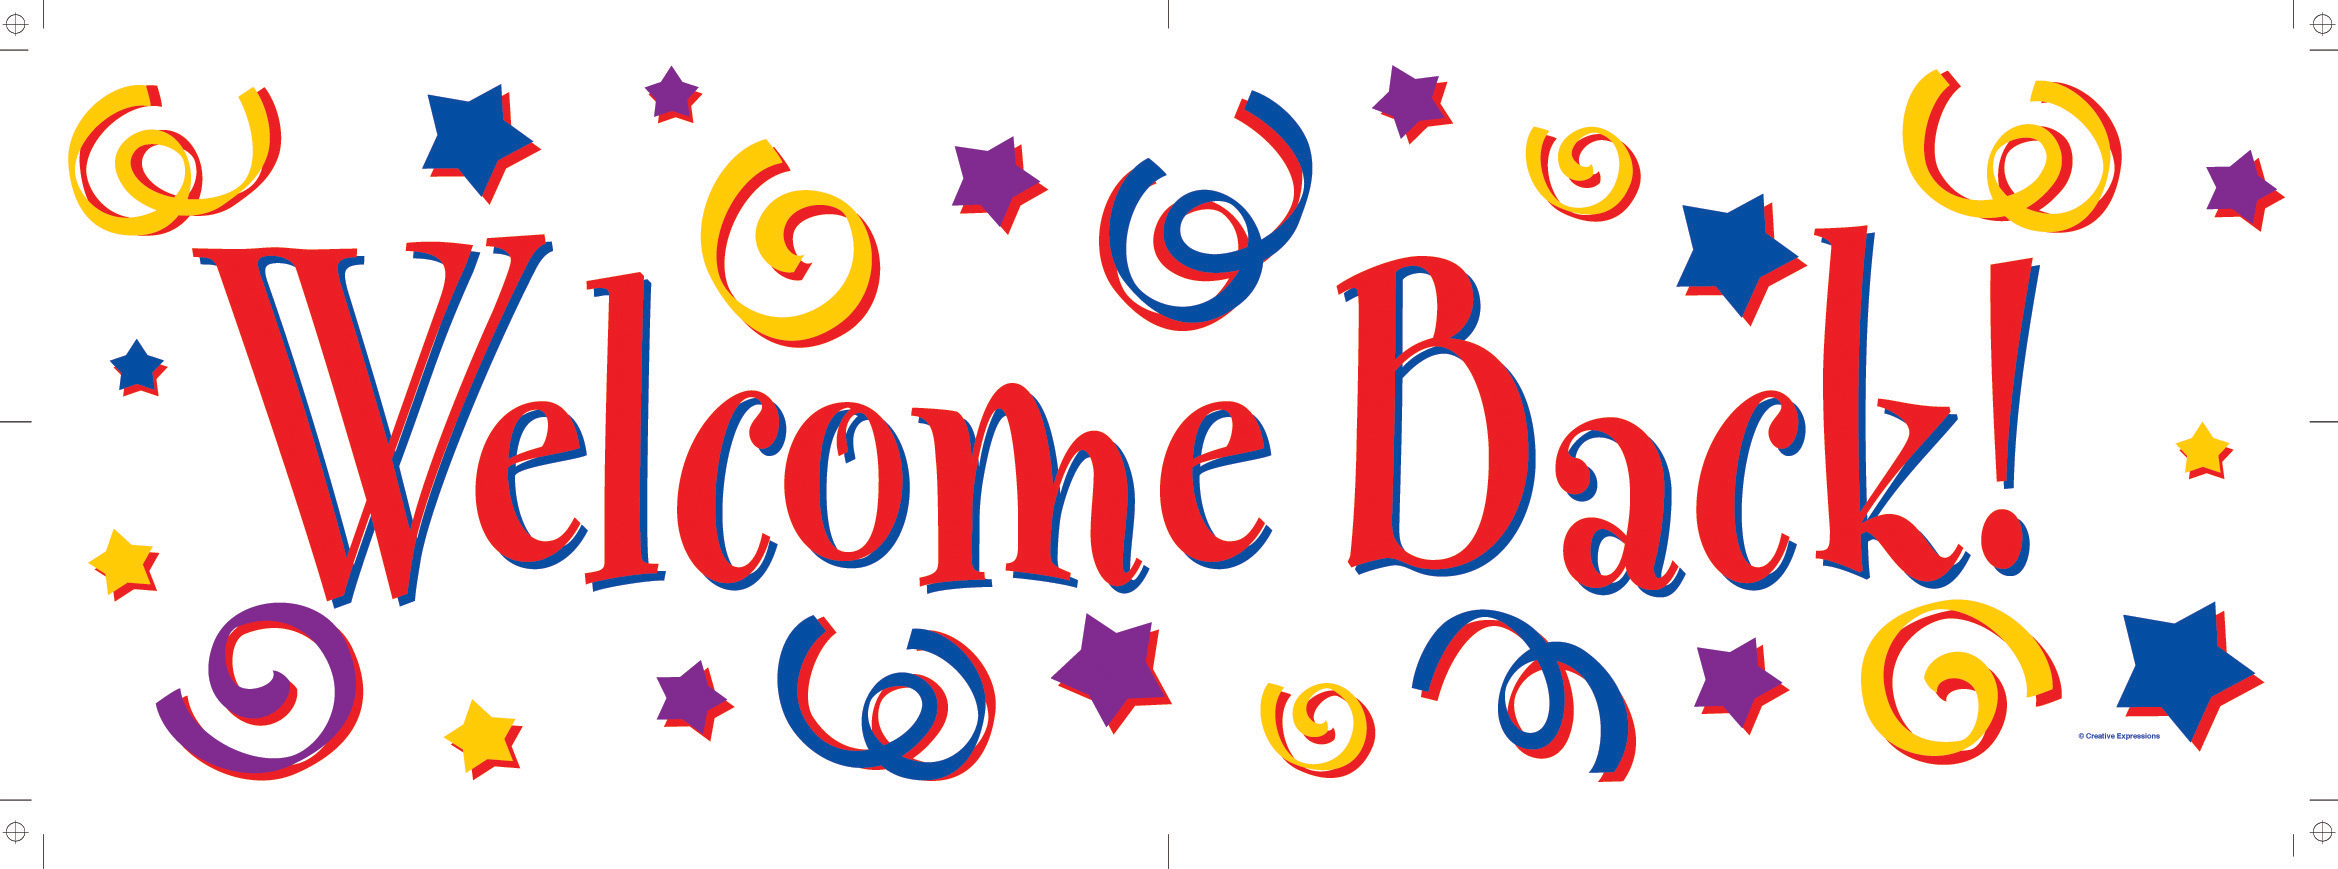 Free Clip Art Welcome Back.